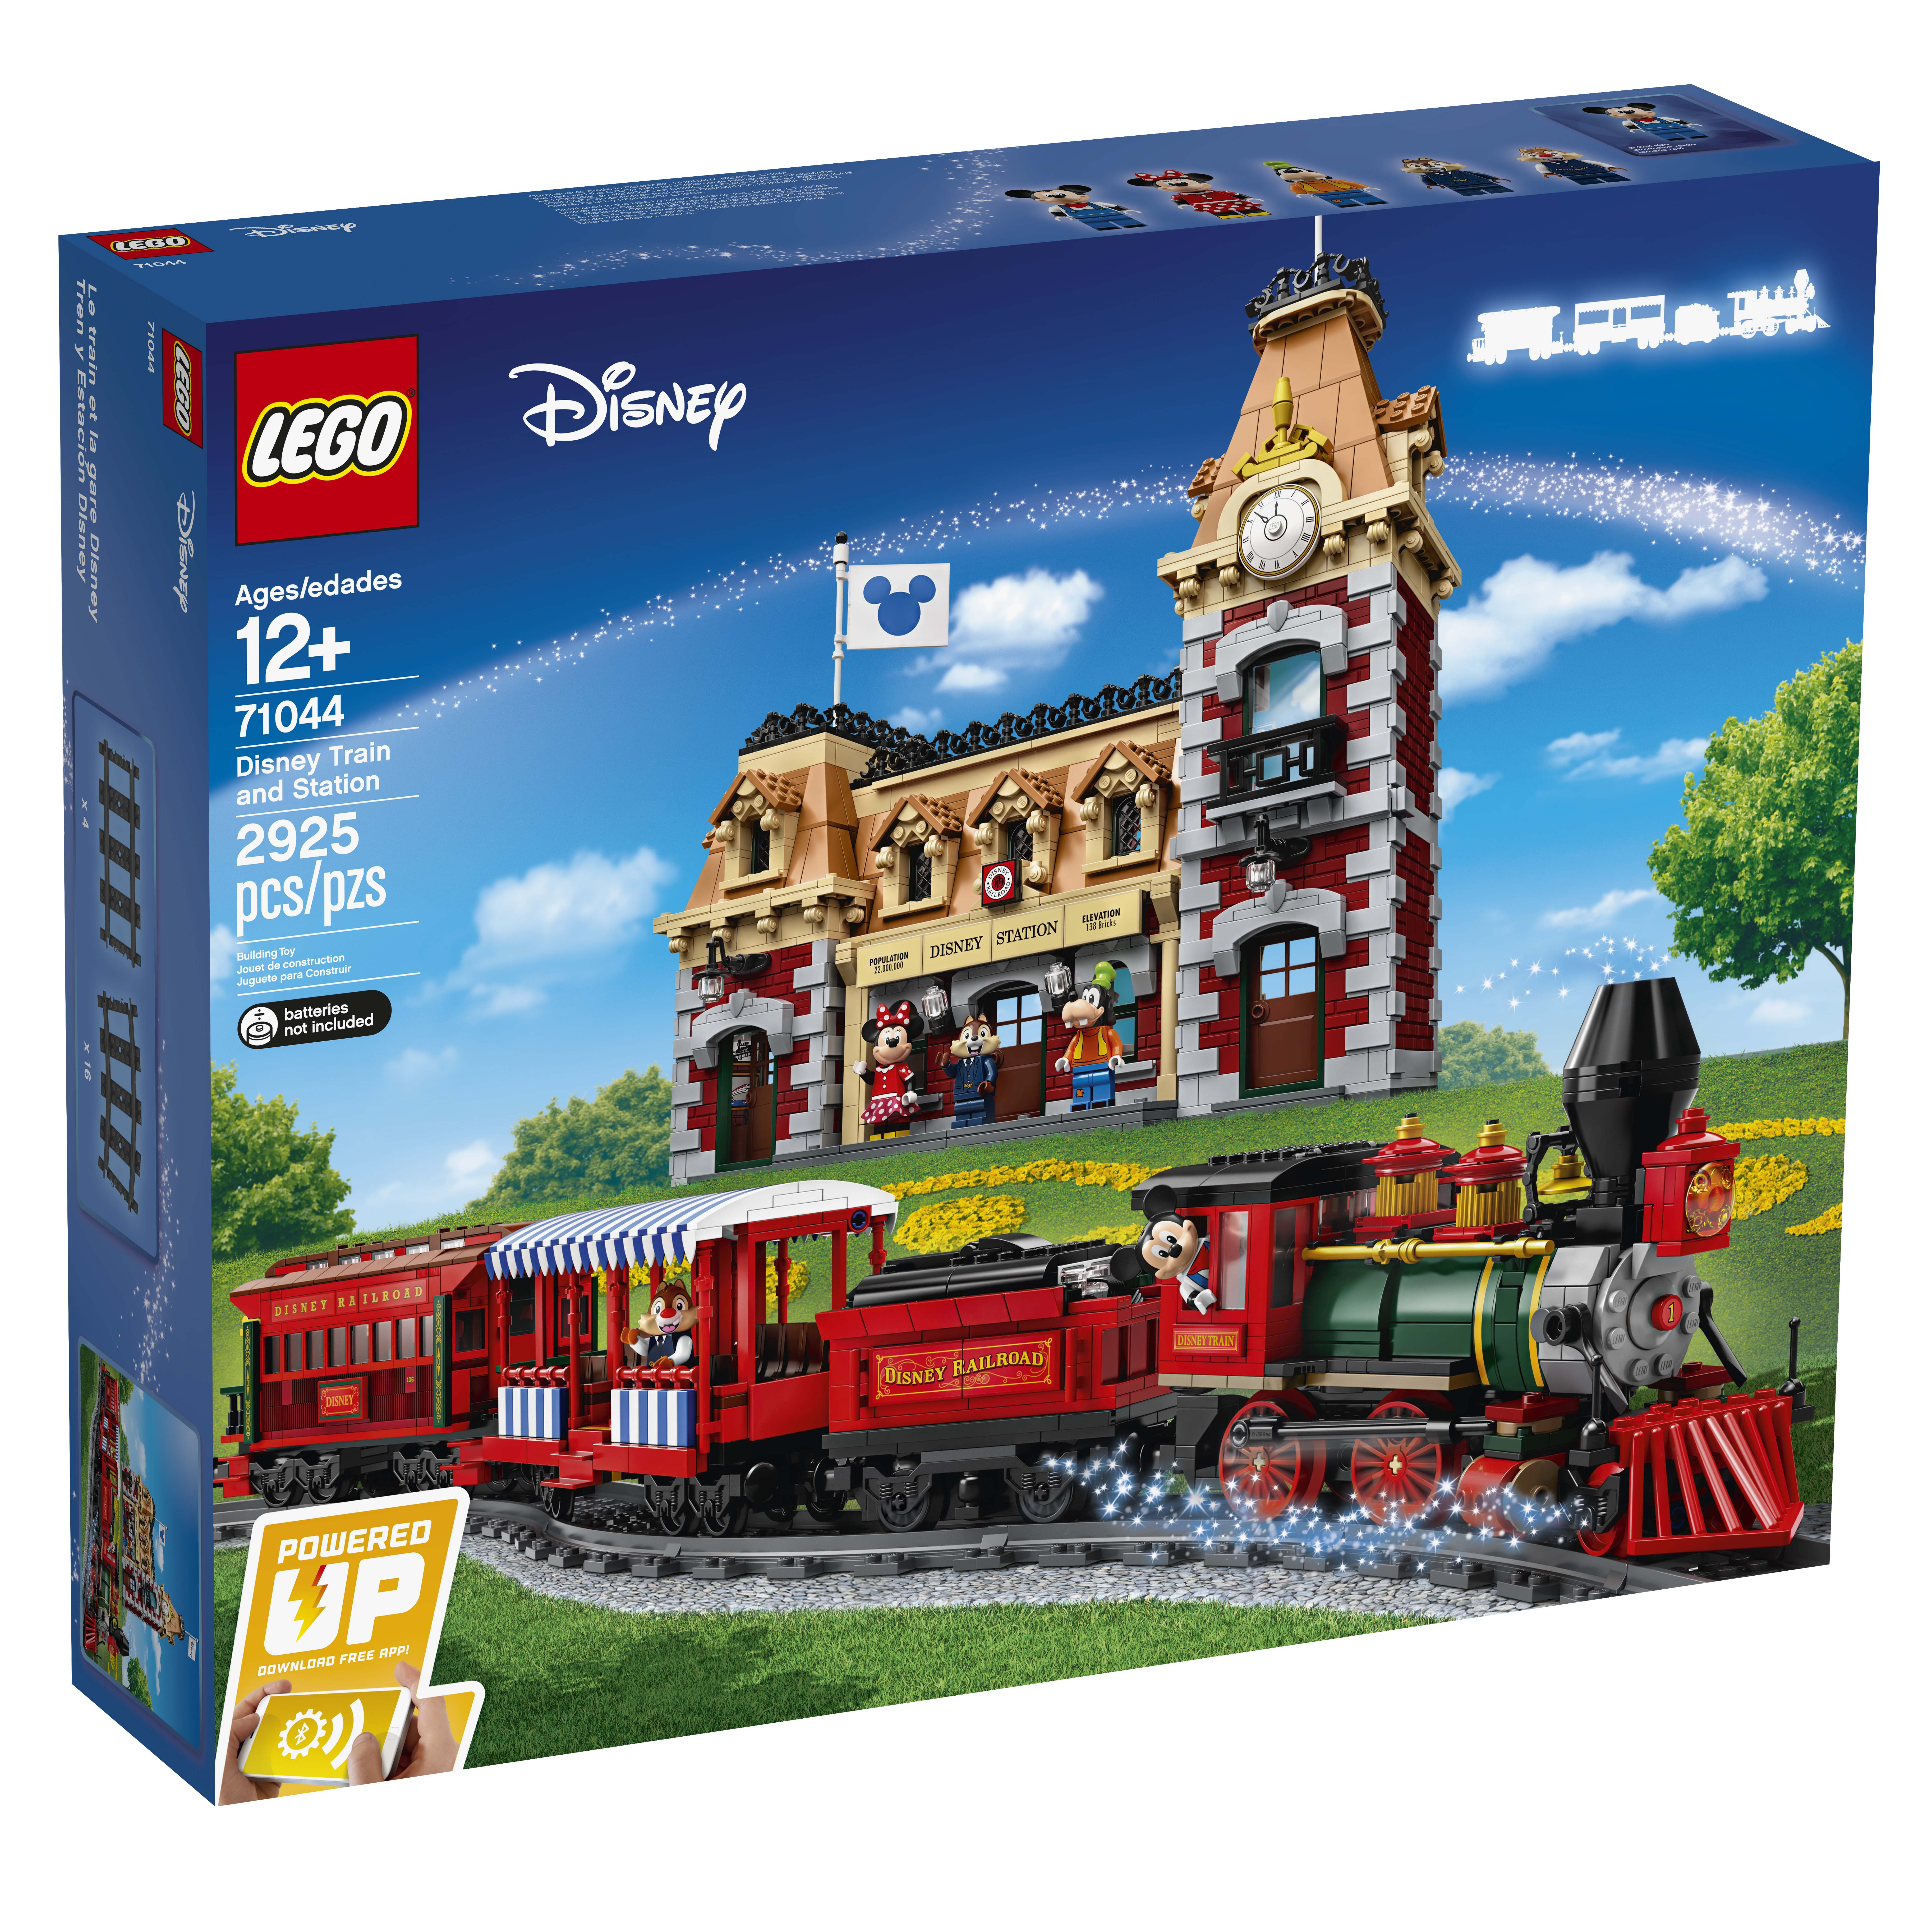 LEGO Disney Train and Station (71044) Officially Announced ...